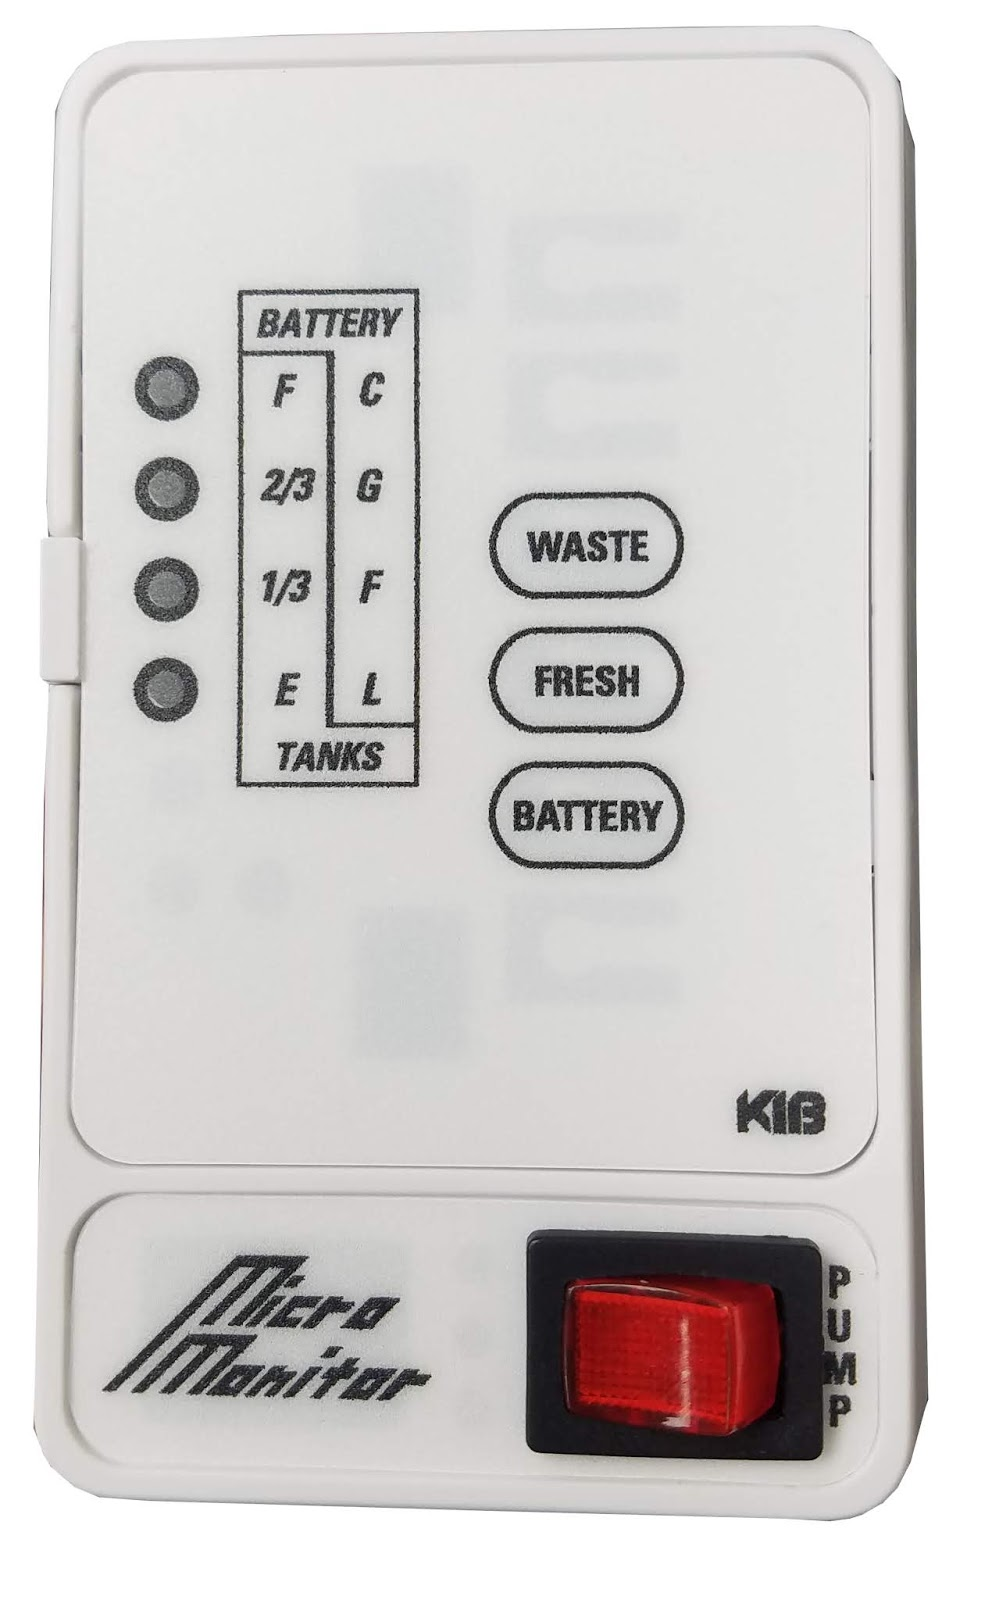 Class A Customs Ventline Monitor Panel Wiring Diagram Kib 2 Tank Monitoring For Fresh And Waste Water